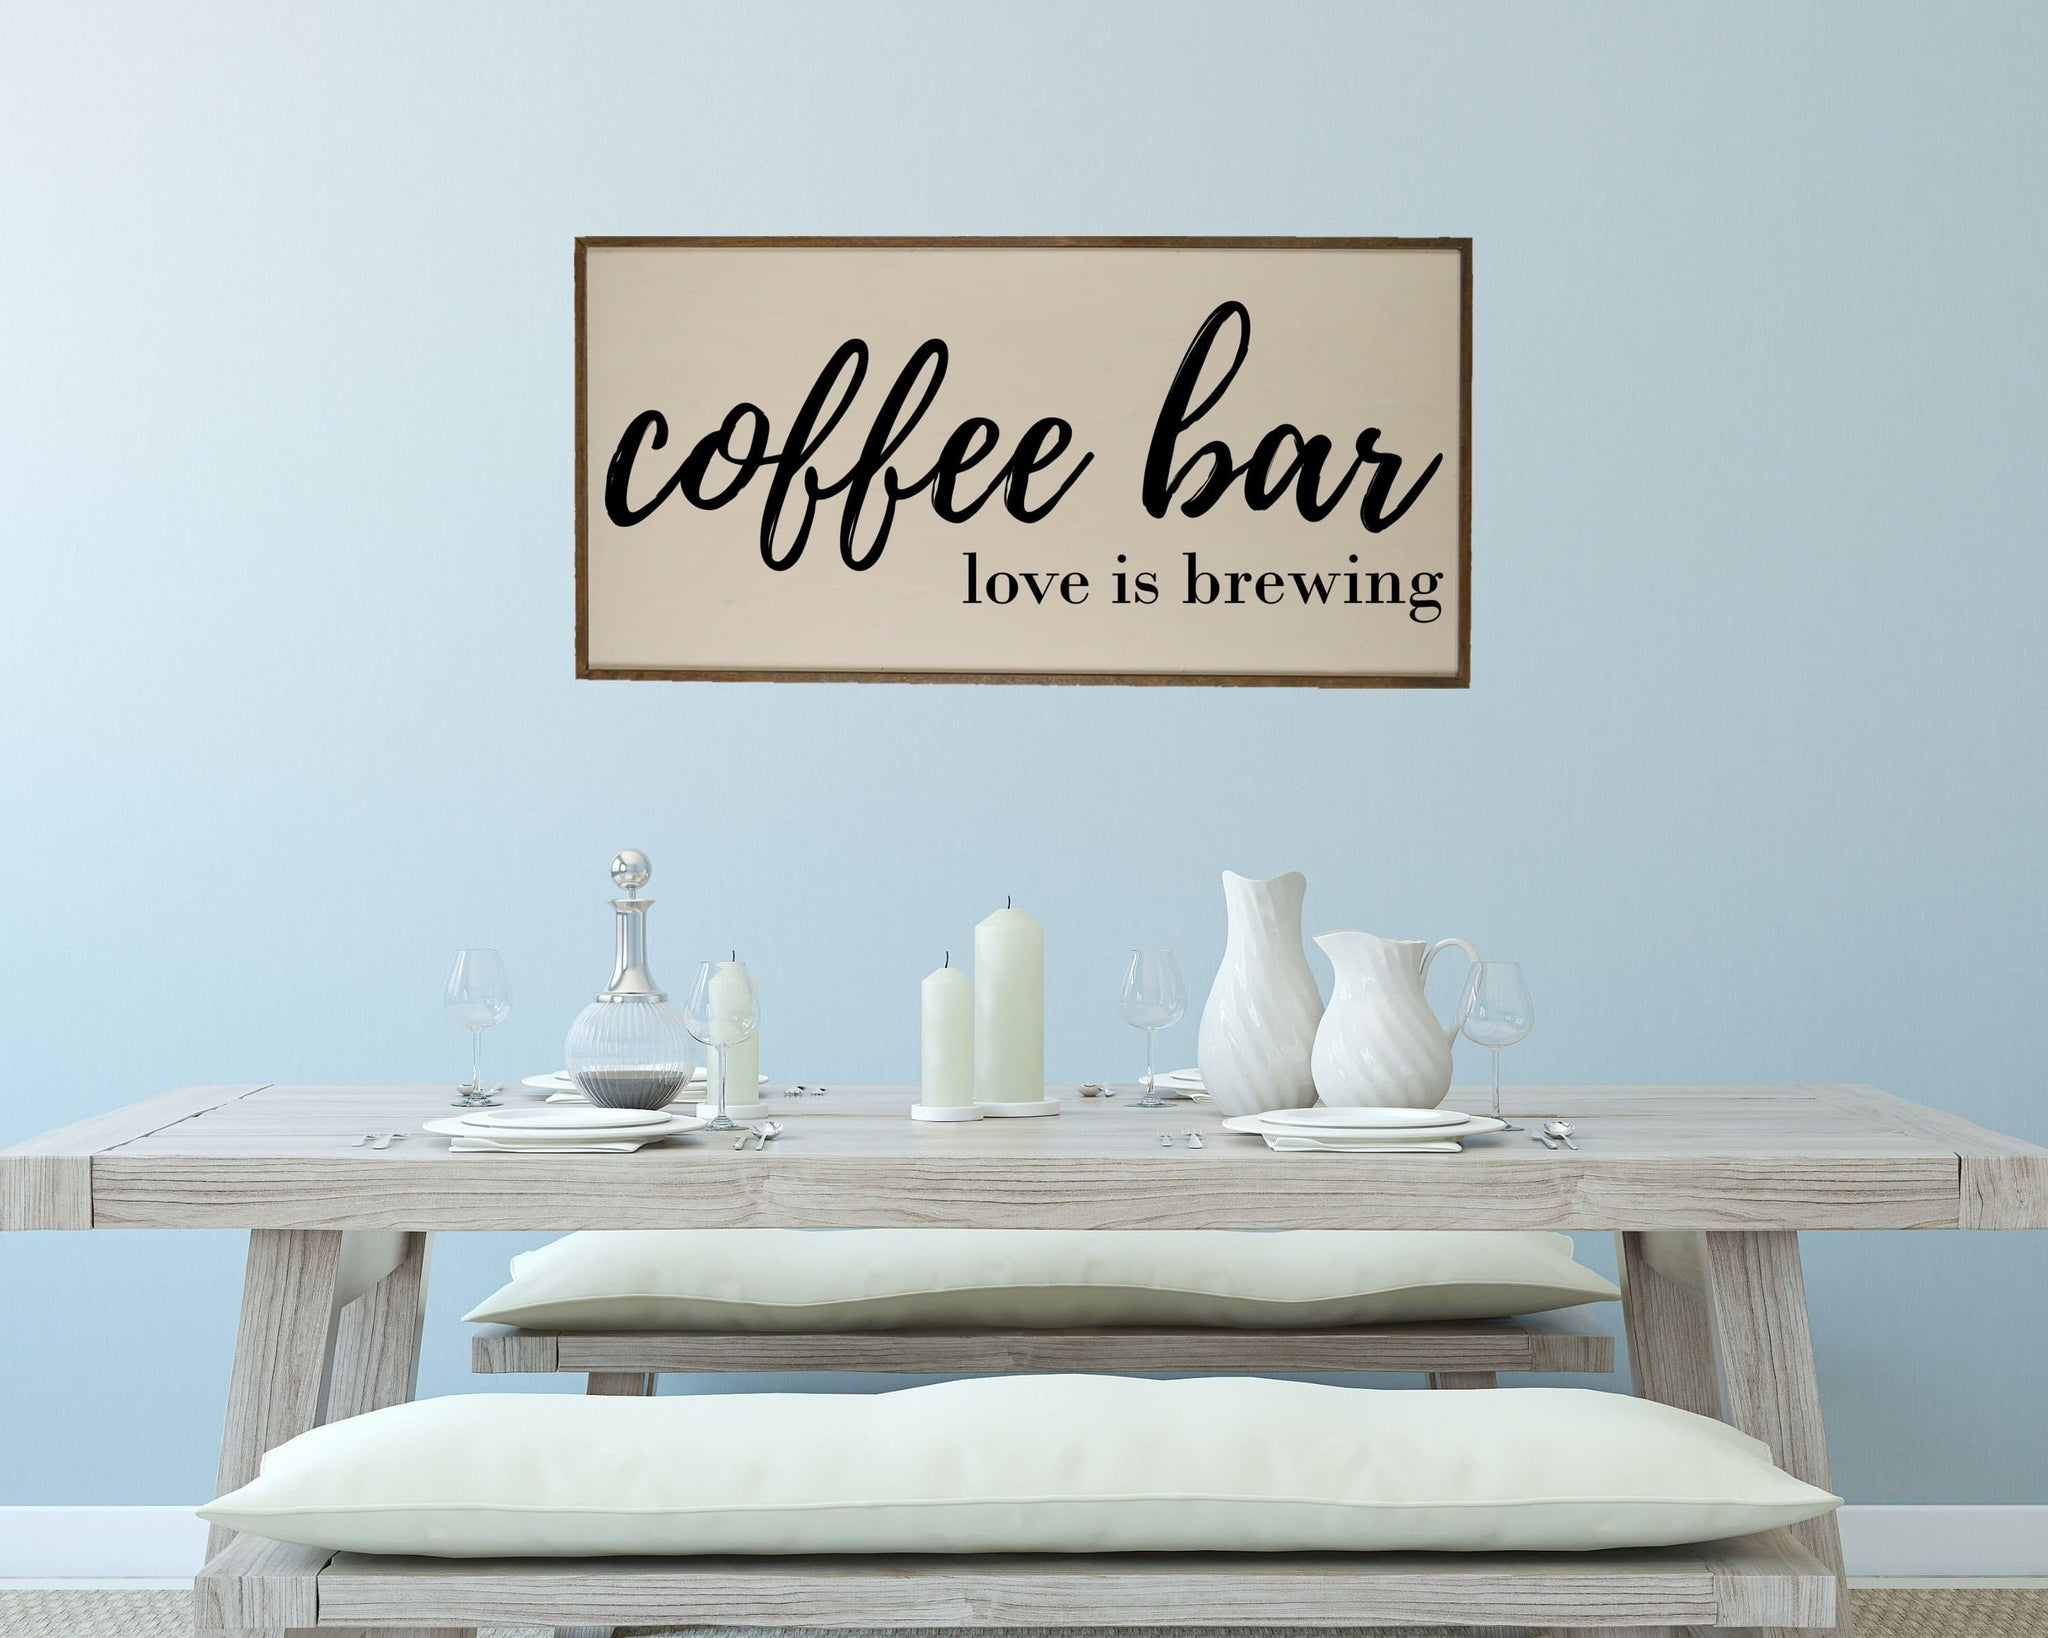 Coffee Bar Sign Coffee Sign Coffee Bar Love Is Brewing Large Wood Sign Kitchen Decor Kitchen Signs Handmade Signs Home Decor